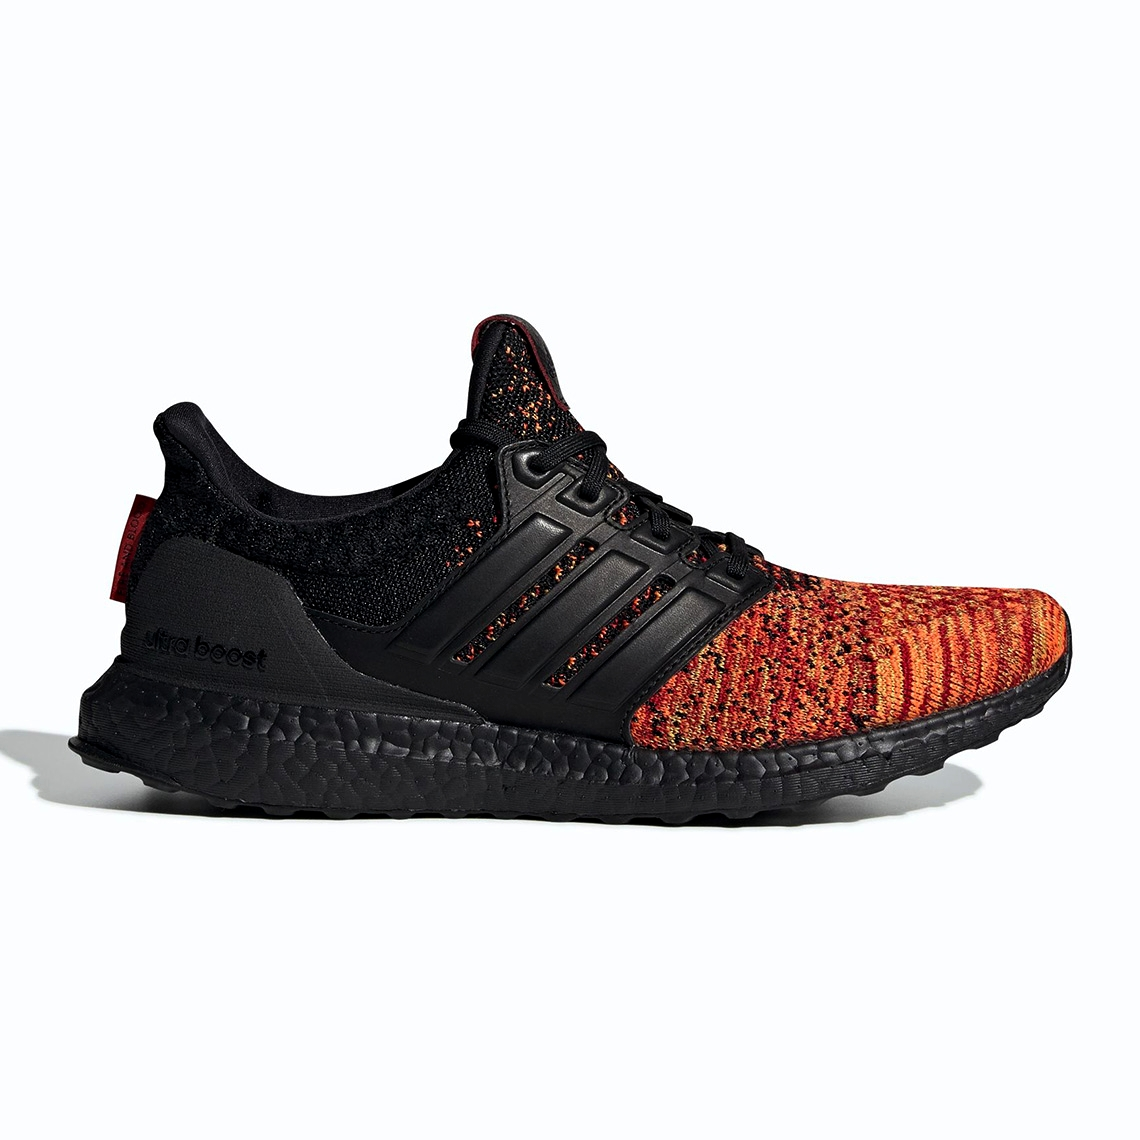 Game Of Thrones x adidas UltraBOOST «Targaryen Dragons»